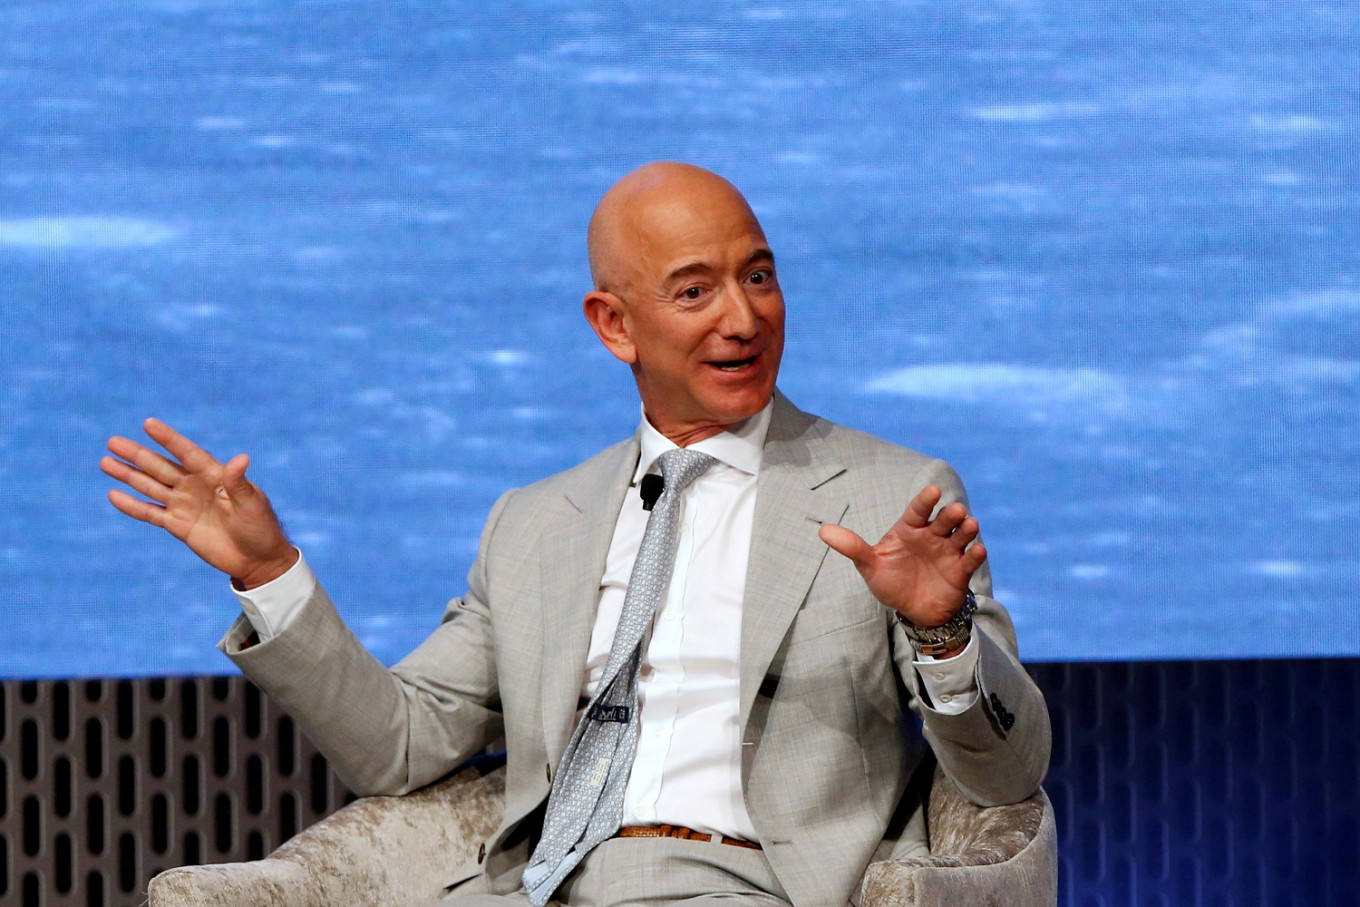 Jeff Bezos steps down from his role of CEO